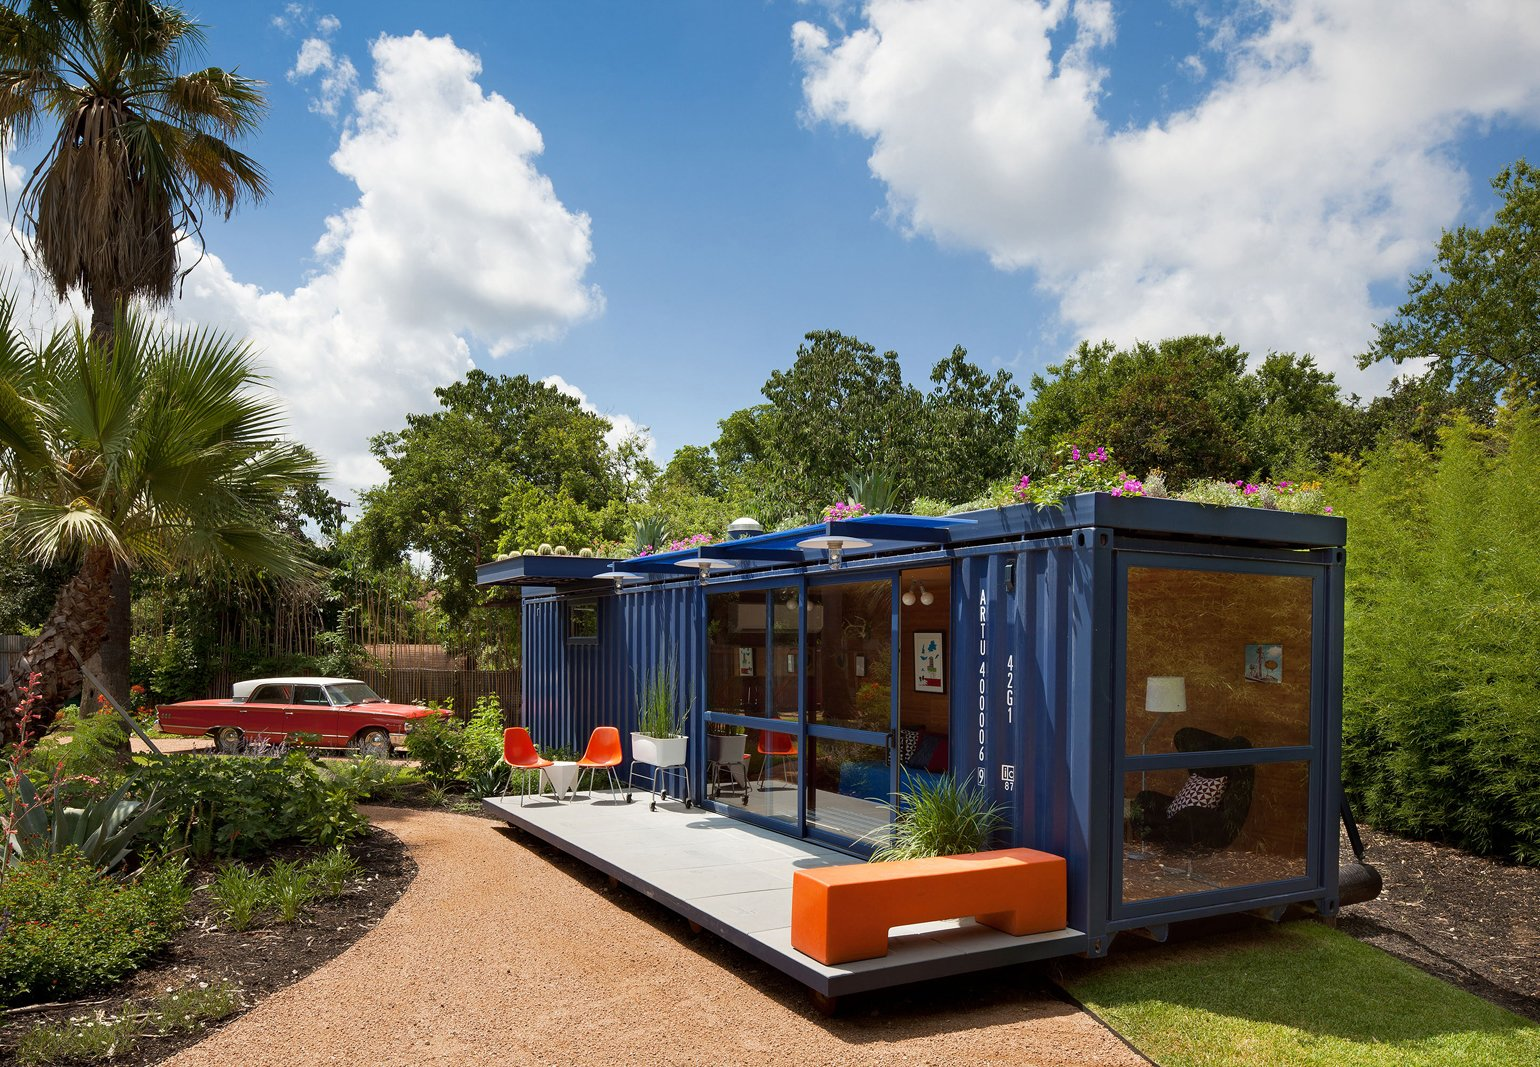 Texas architect Jim Poteet helped Stacey Hill, who lives in a San Antonio artists' community, wrangle an empty steel shipping container into a playhouse, a garden retreat, and a guesthouse for visiting artists. The container measures a narrow and long 8 by 40 feet; Hill asked that a portion of the square footage be retained as a garden shed and the rest serve as the living space.  20 Ideas On What You Can Do With Old Shipping Containers